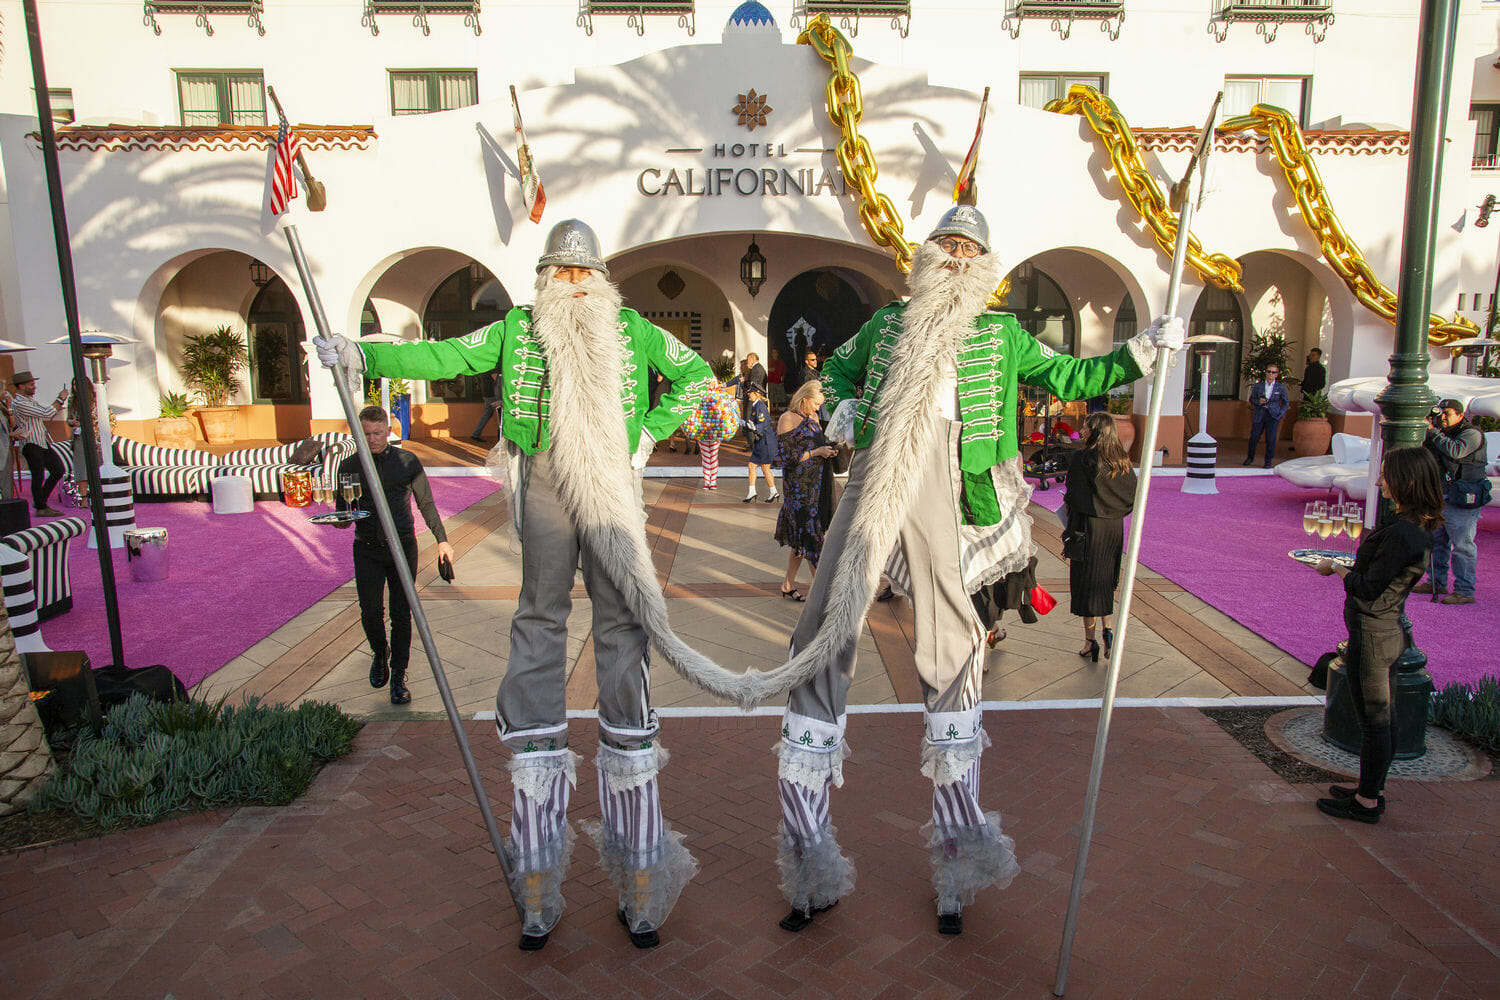 event-photographer-santa-barbara-hotelcalifornian_145